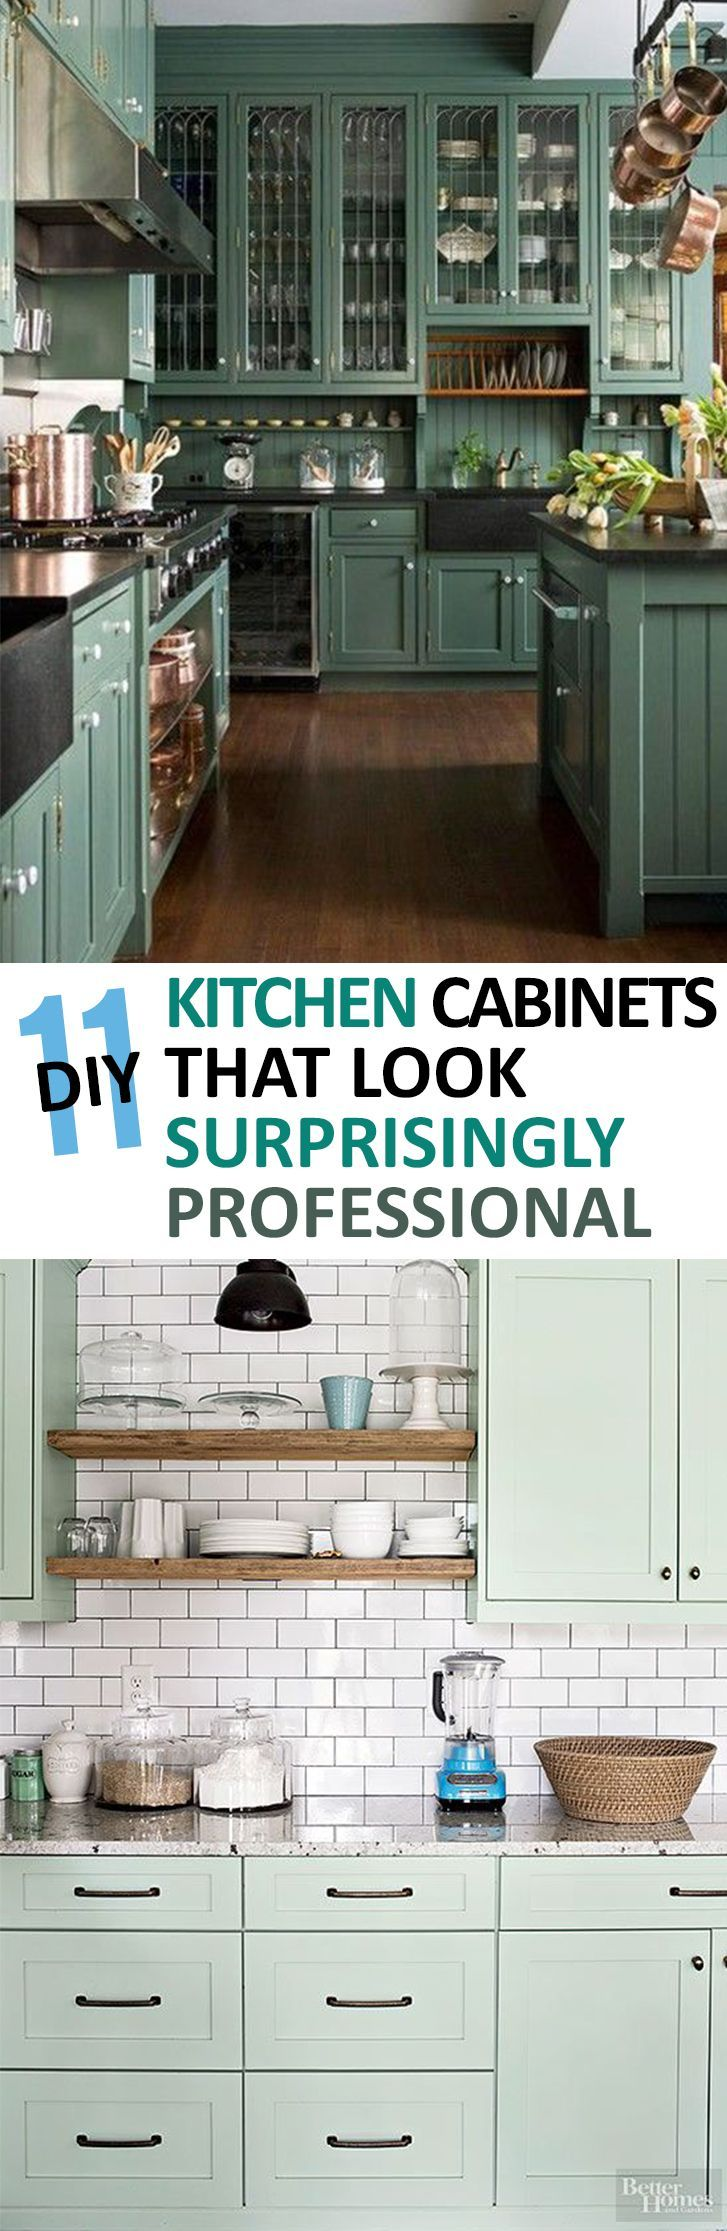 11 Painted Kitchen Cabinets That Look Surprisingly Professional Diy Kitchen Cabinets Home Remodeling Diy Kitchen Cabinets Decor